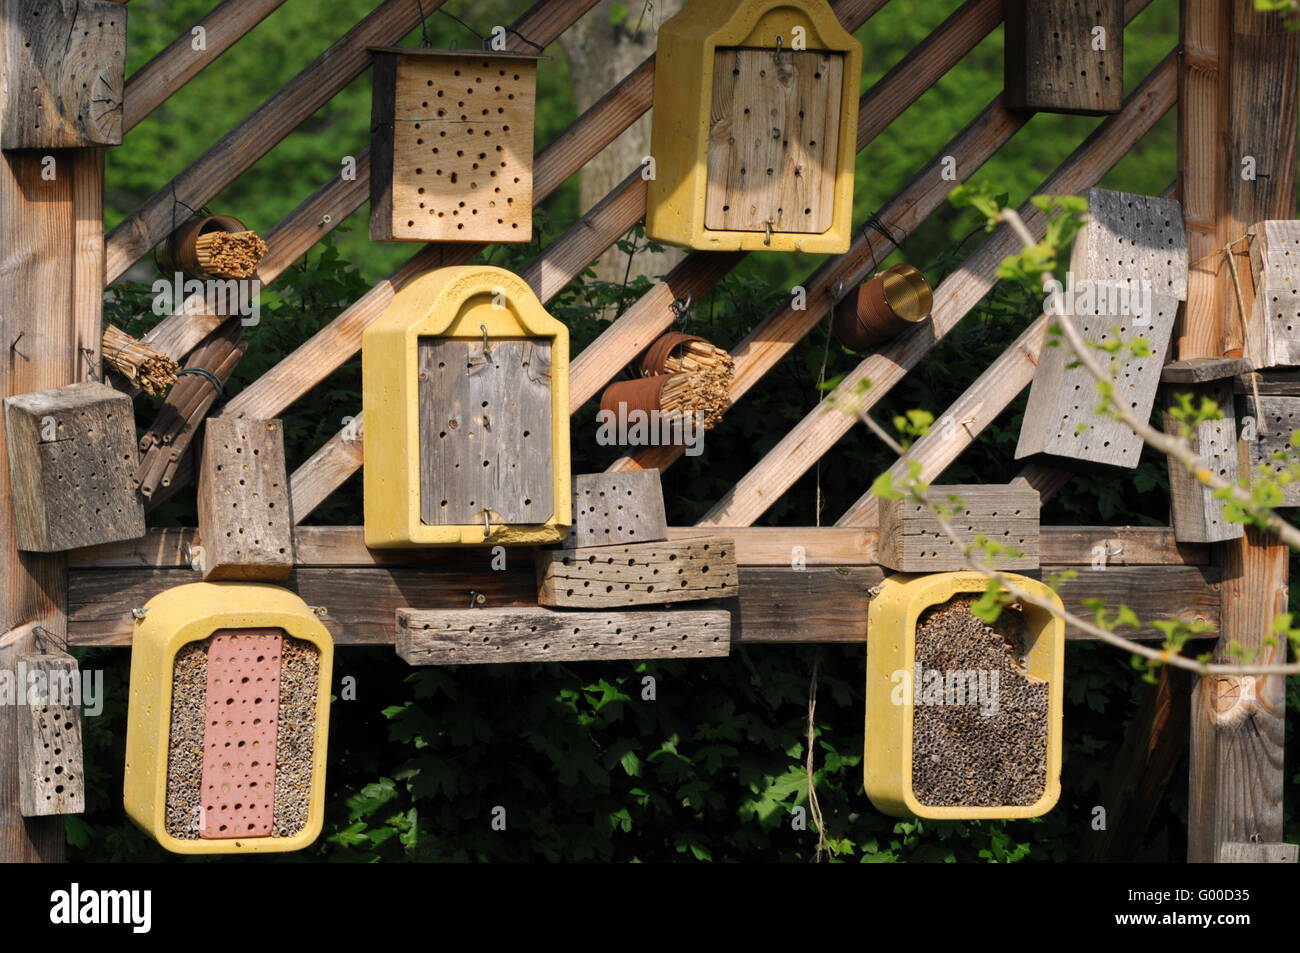 insect houses - Stock Image